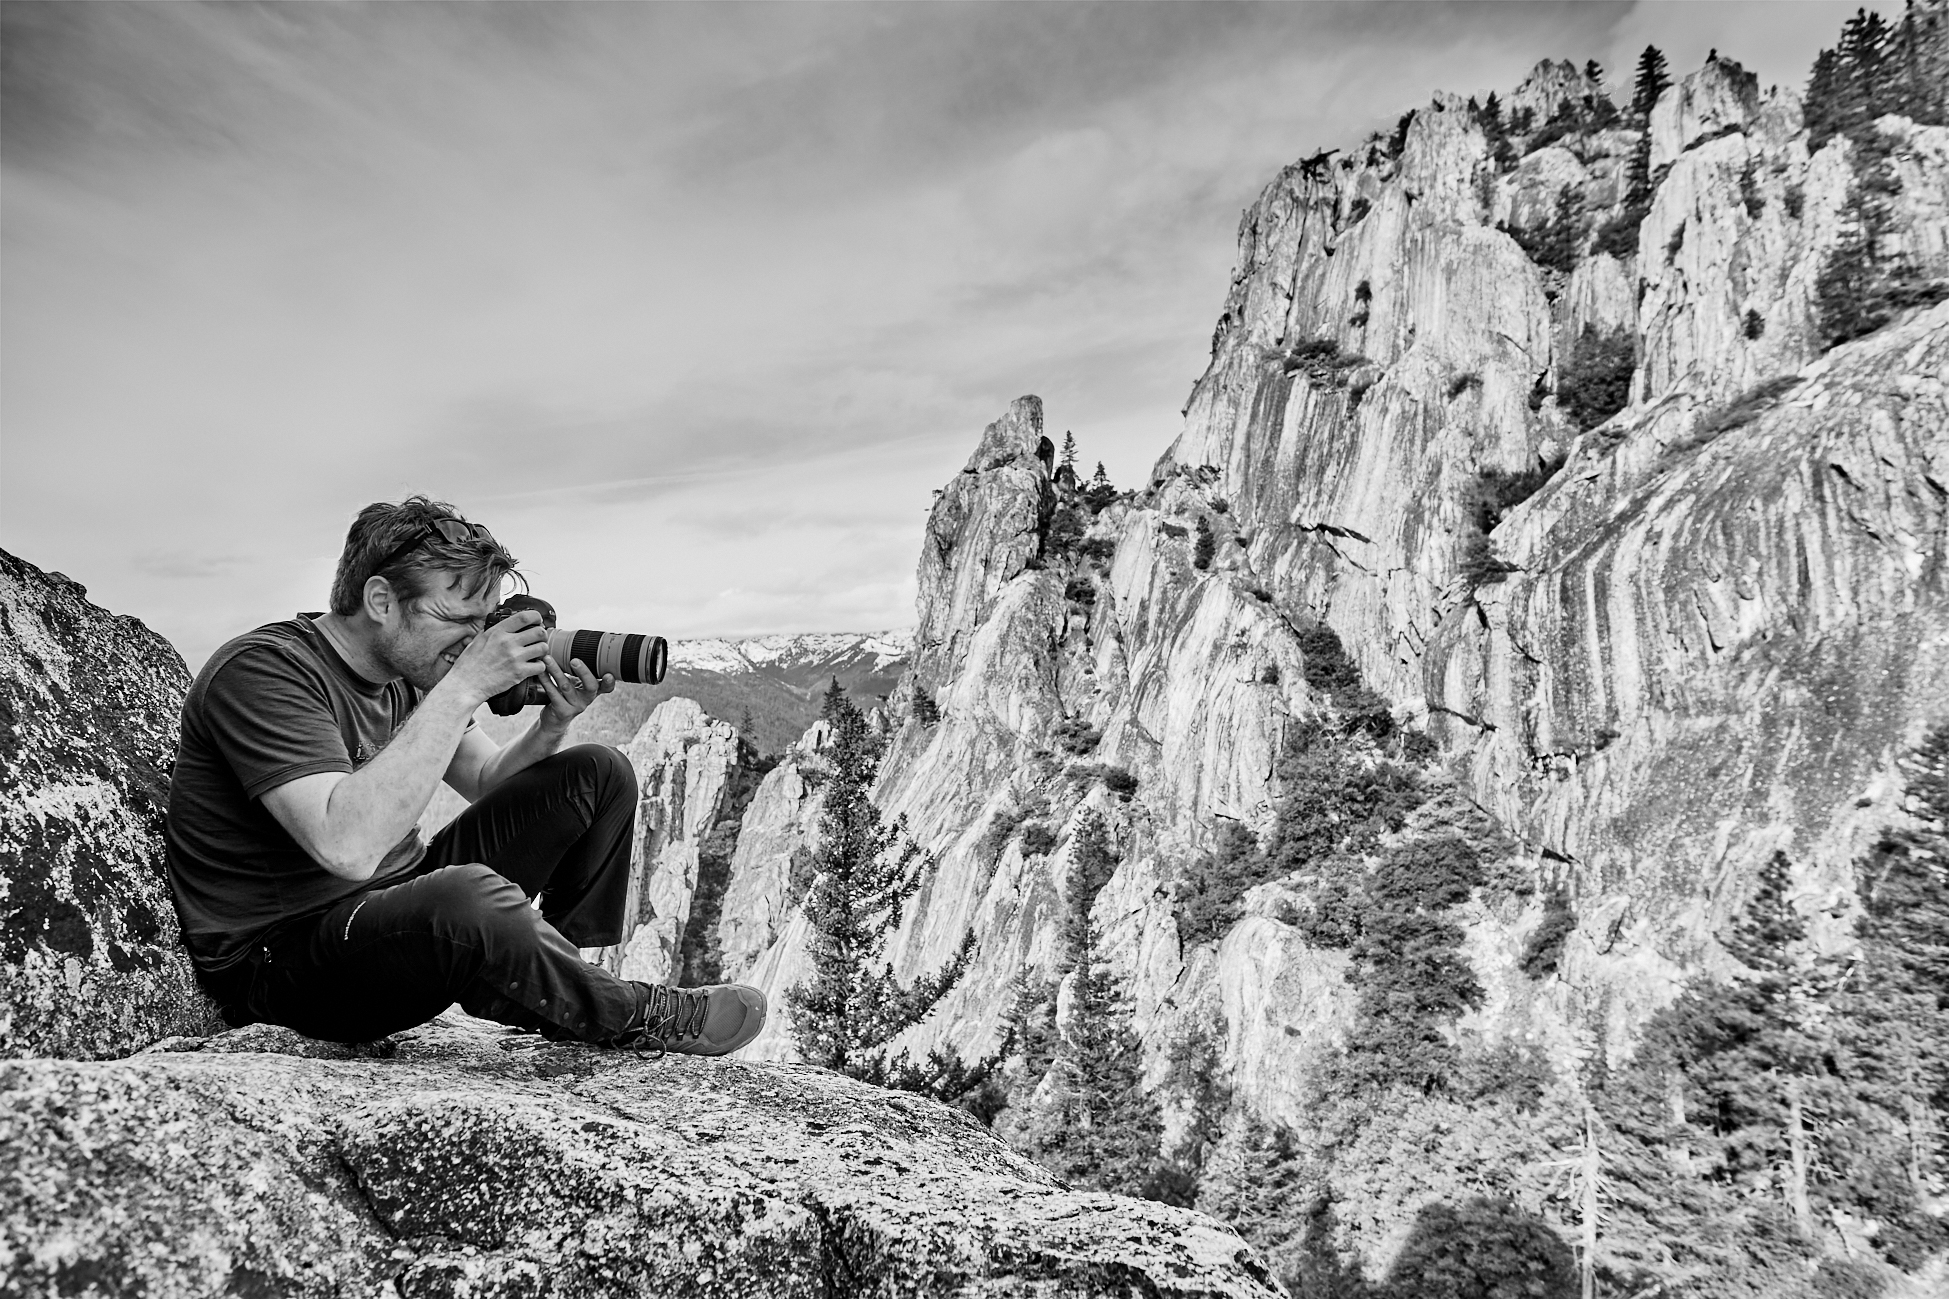 Man sitting on the side of a mountain aiming a camera out of the frame